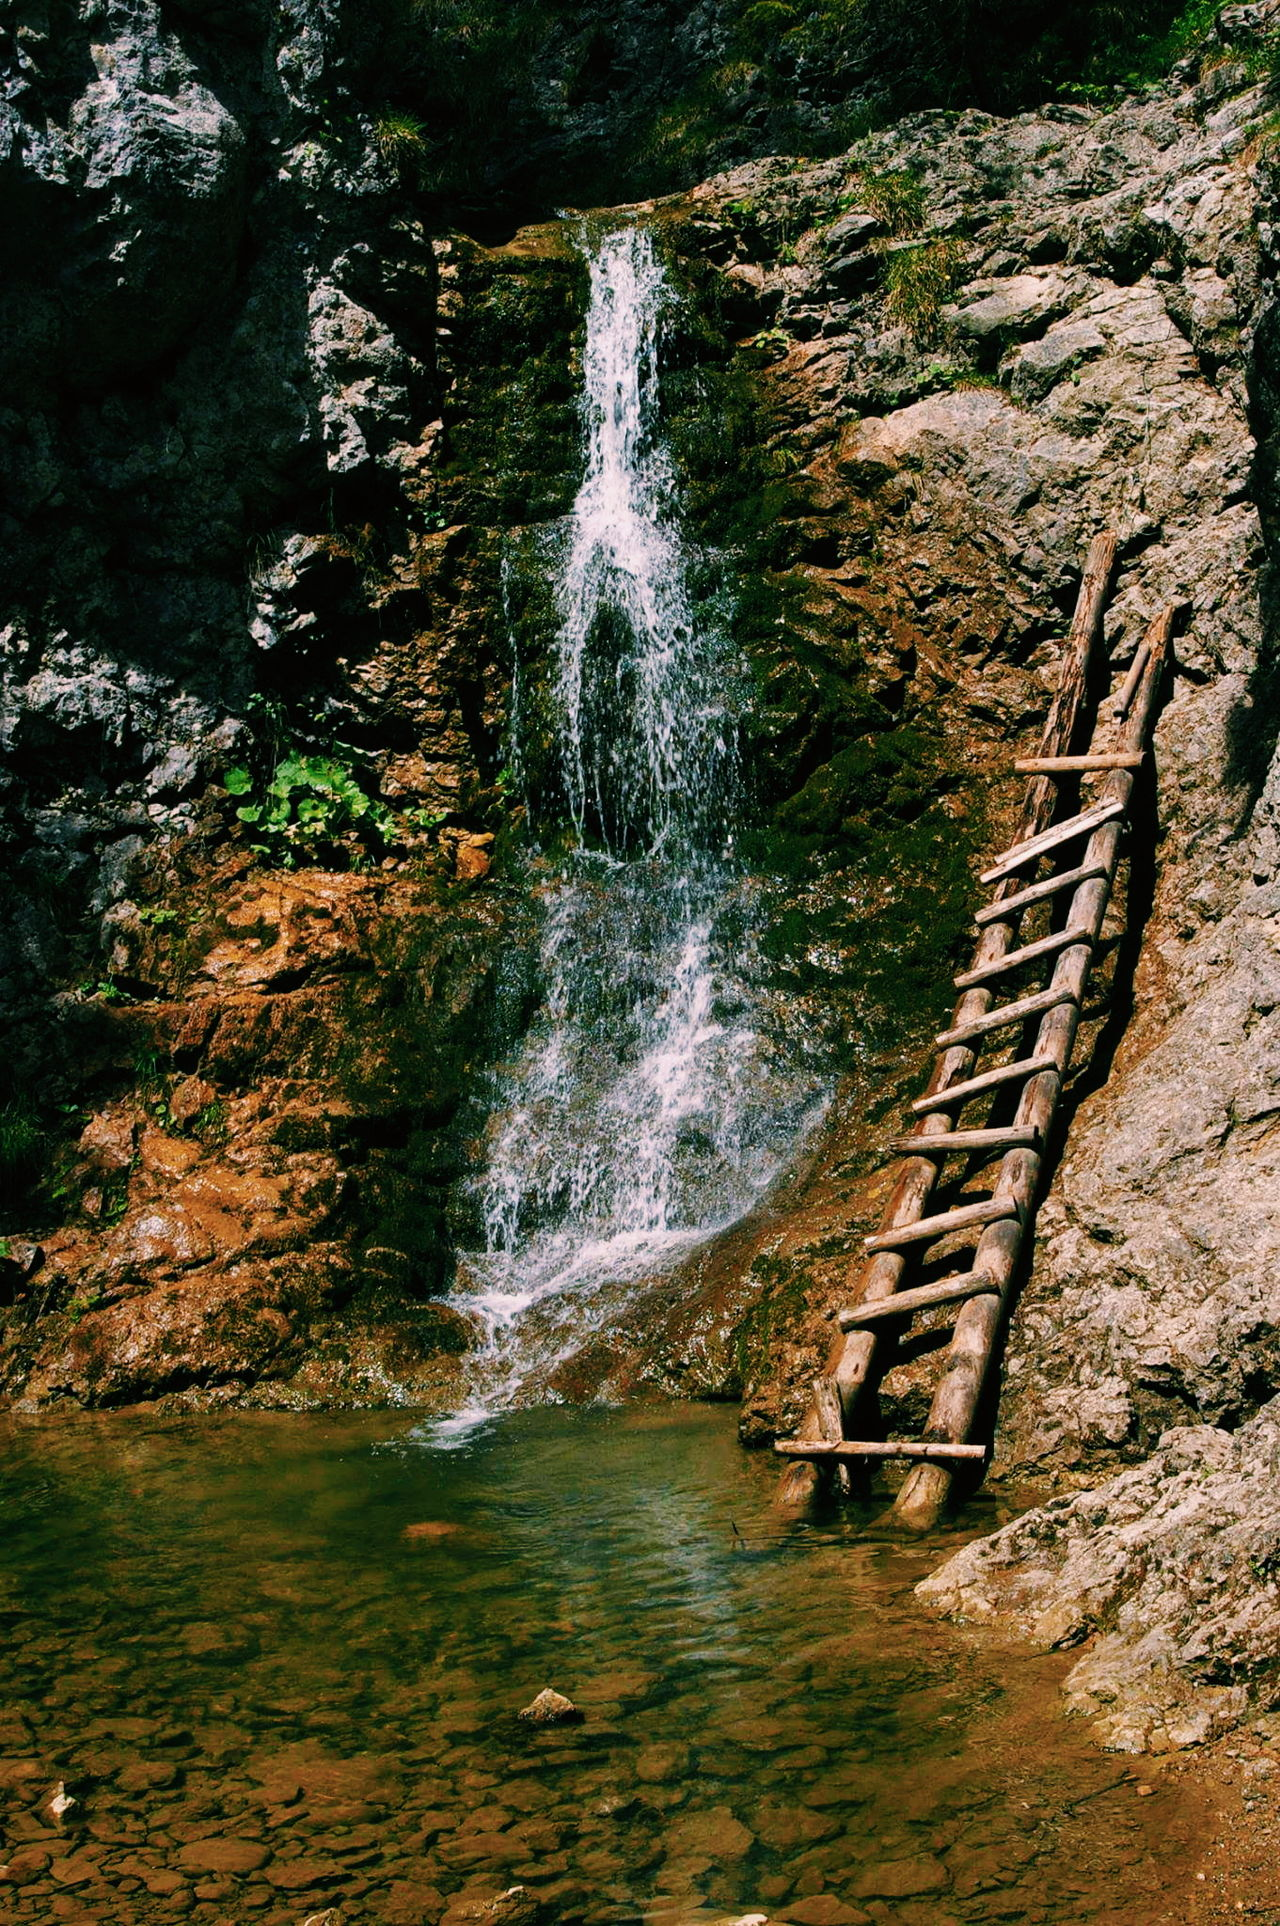 With it, I can dream boldly, with him every pitfall handle. He who gives me wings, trumps all governments. Wooden Ladder Beauty In Nature Clear Water Happy Trip :) My Day Sunny Day☀ Waterfall